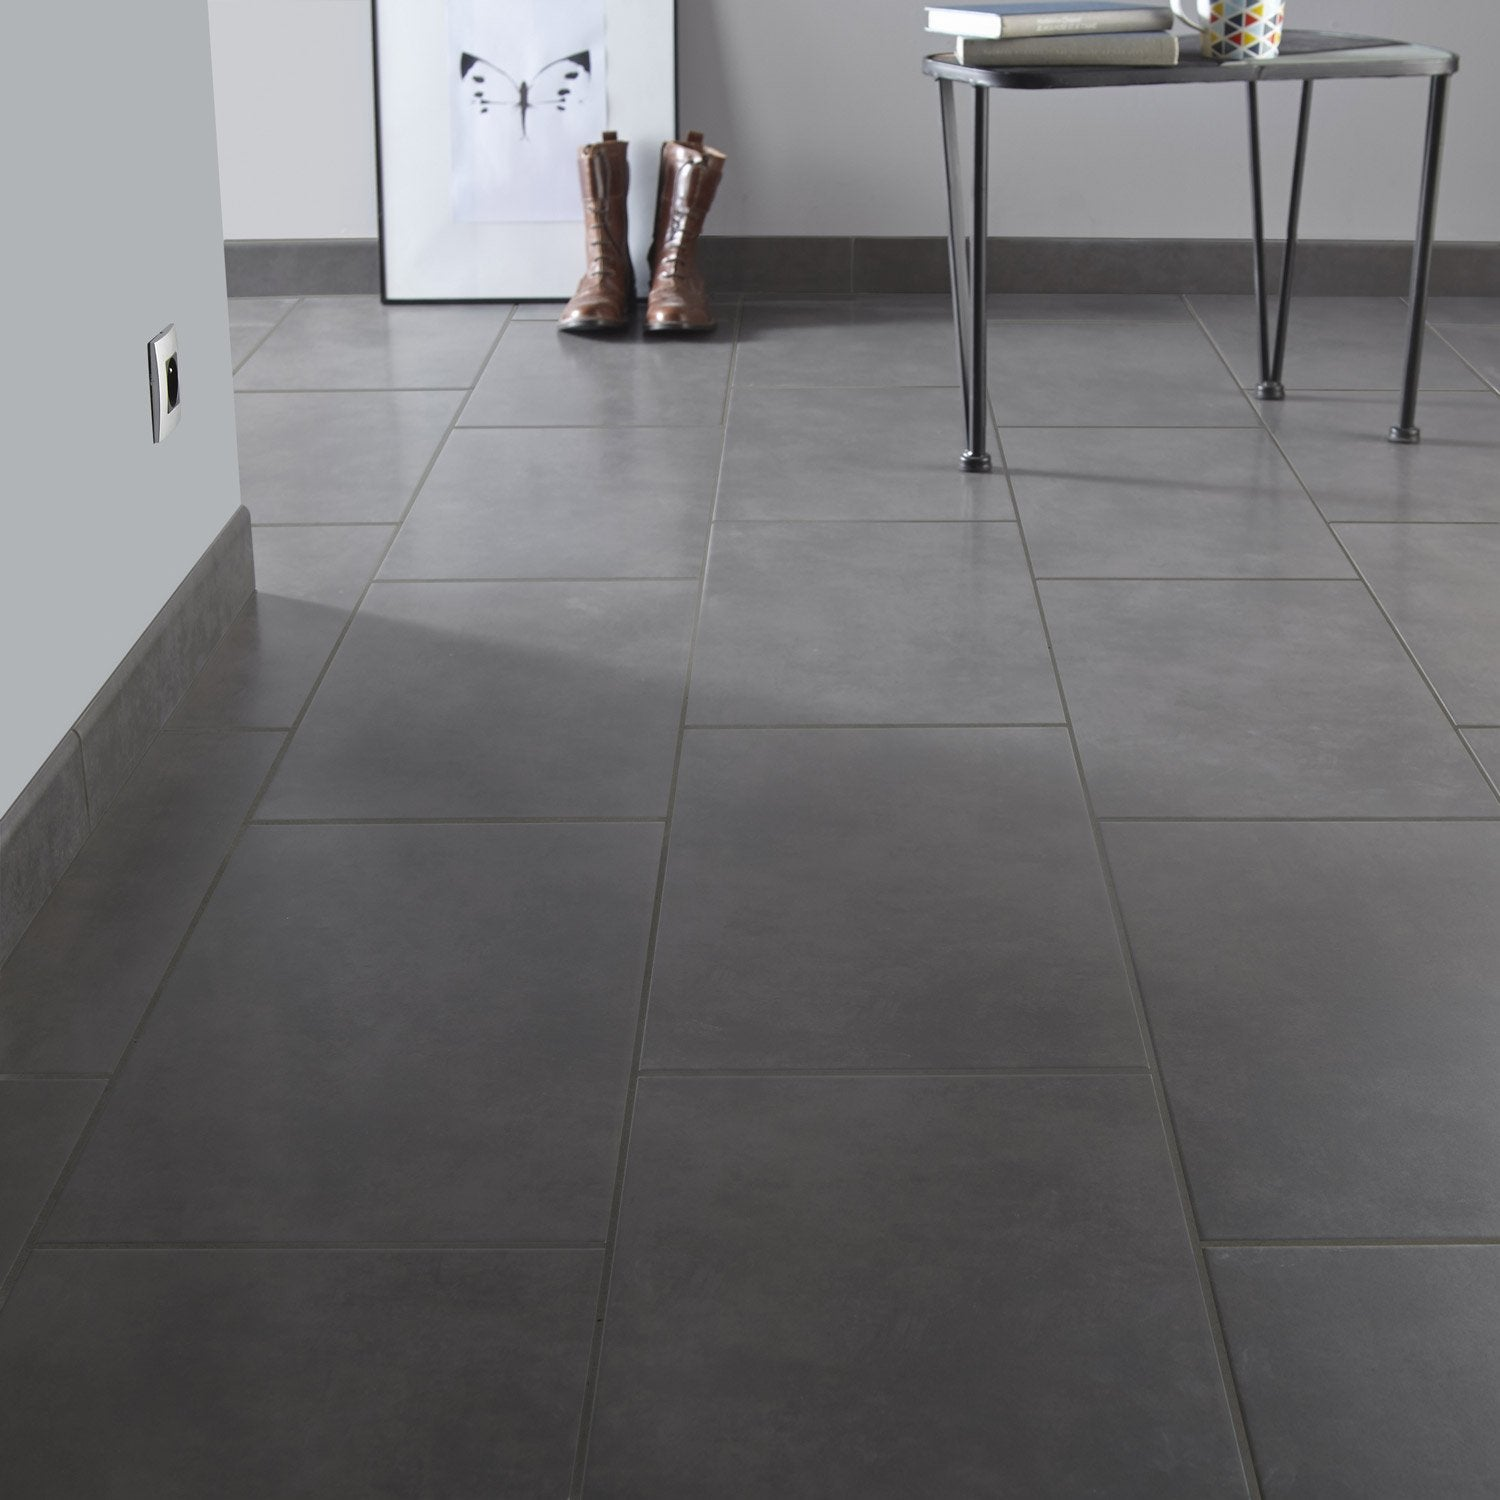 Carrelage sol et mur anthracite effet b ton blackpool for Carrelage gris anthracite